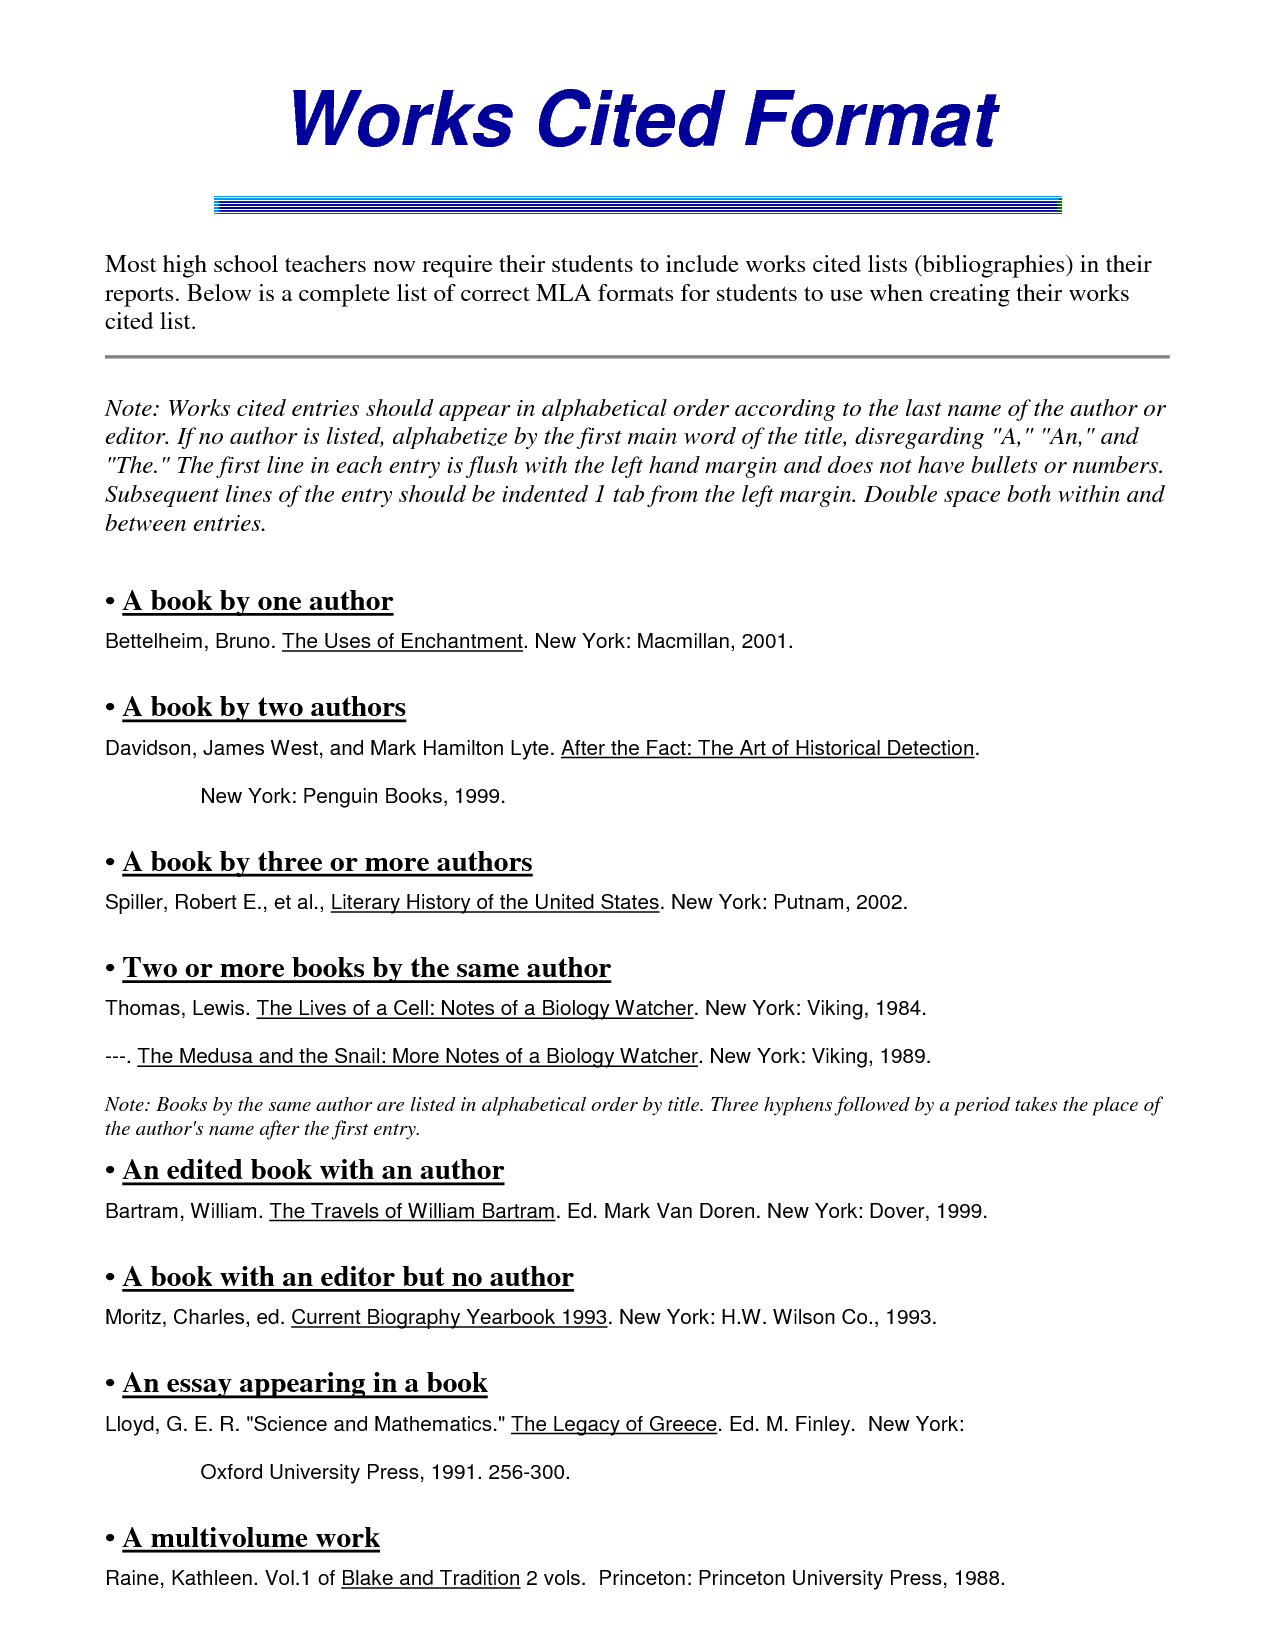 010 Buy Original Essay Annotated Bibliography Generator Mla Example Of With Works Cited L Fantastic Citation Cite Within Book Format In Full